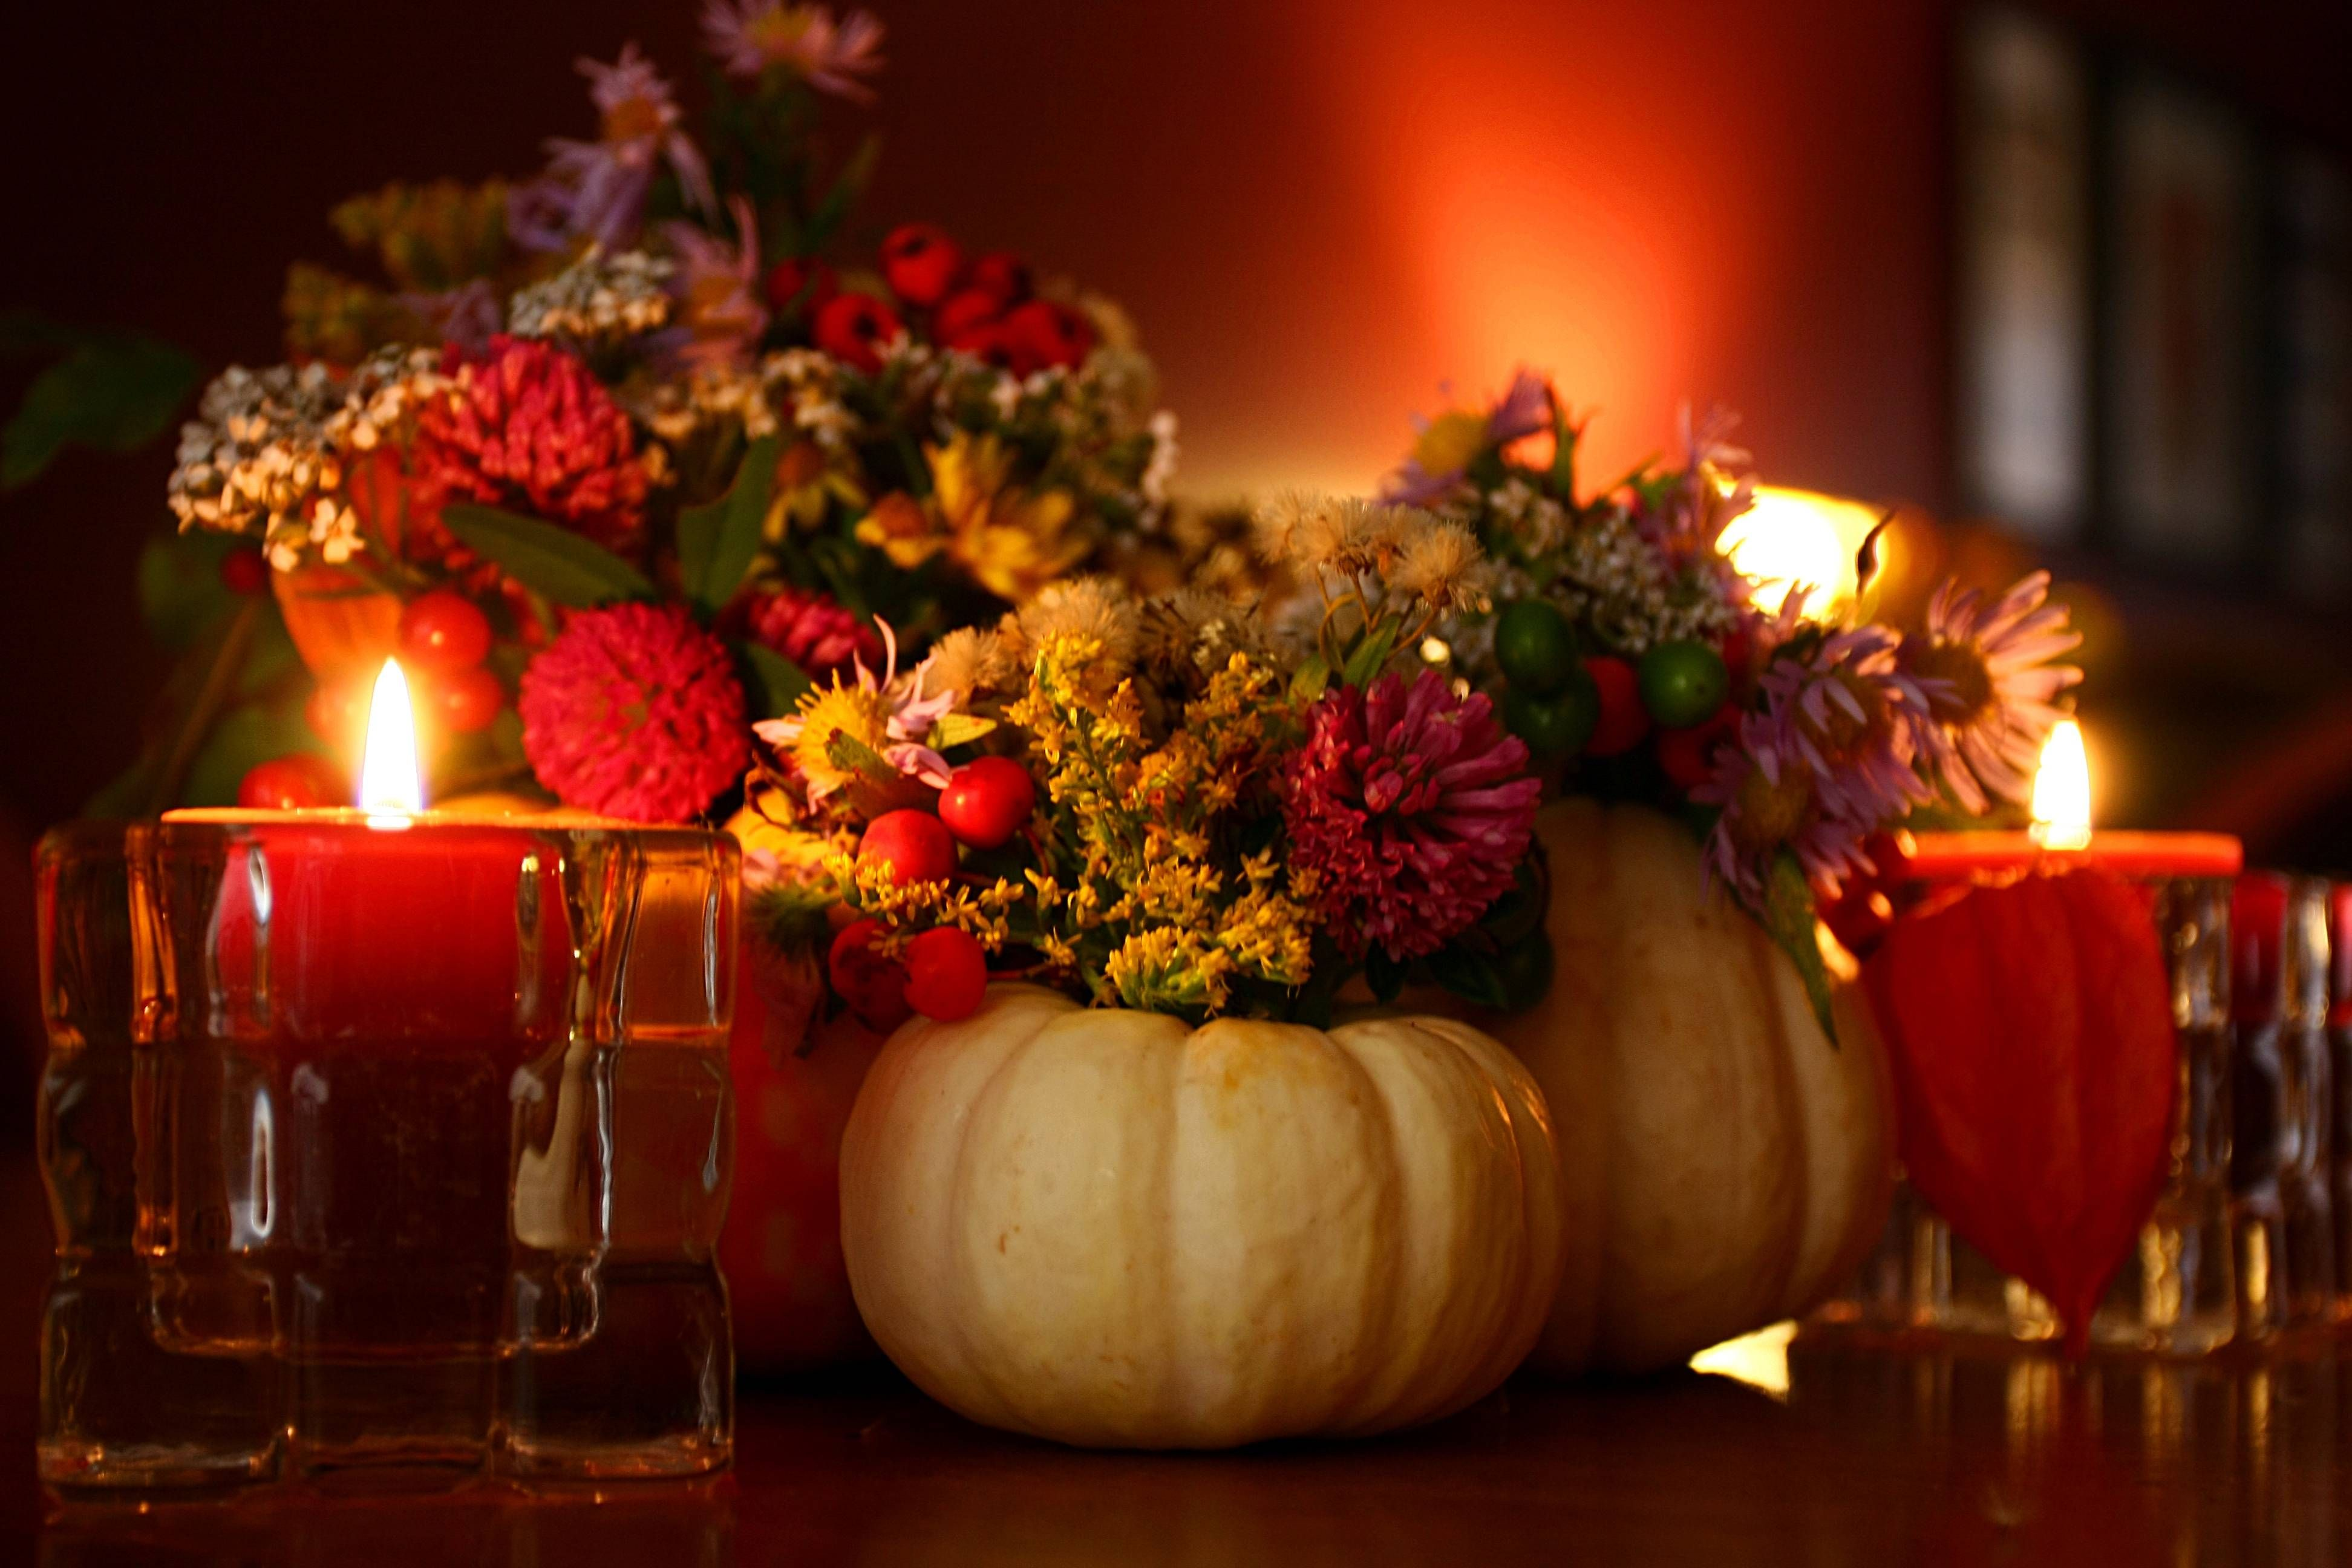 Thanksgiving Wallpaper Backgrounds Free